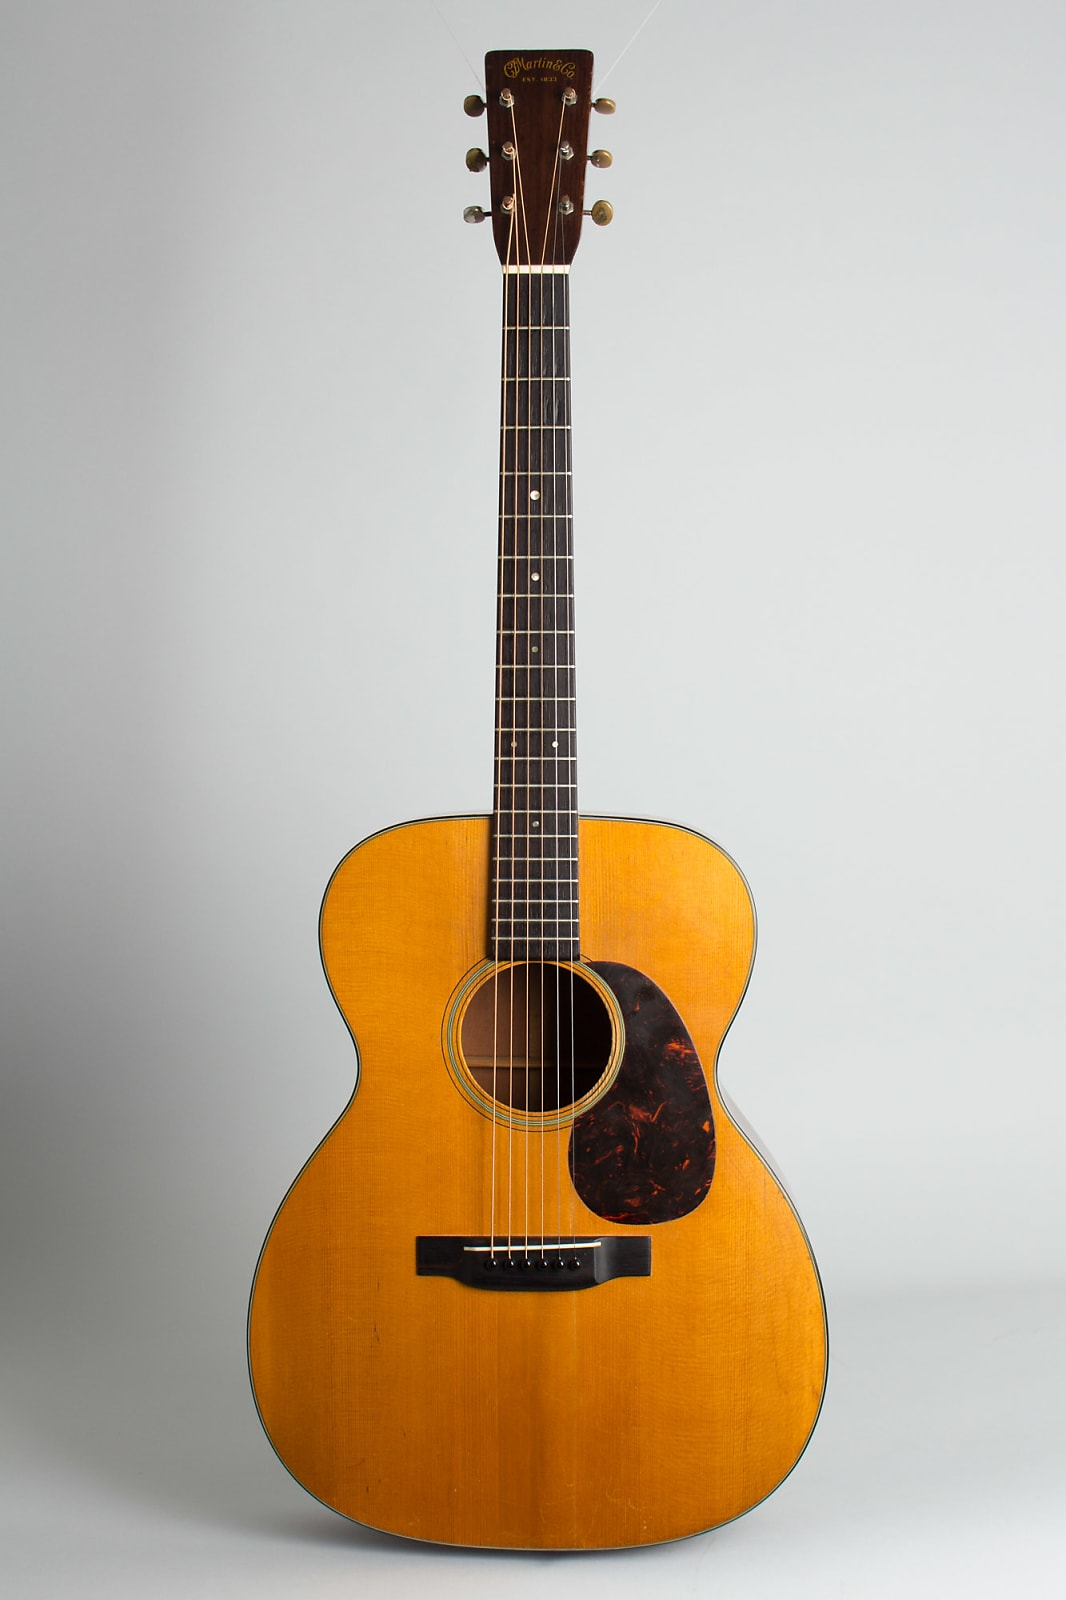 C. F. Martin 000-18 Flat Top Acoustic Guitar 1941 Natural Lacquer